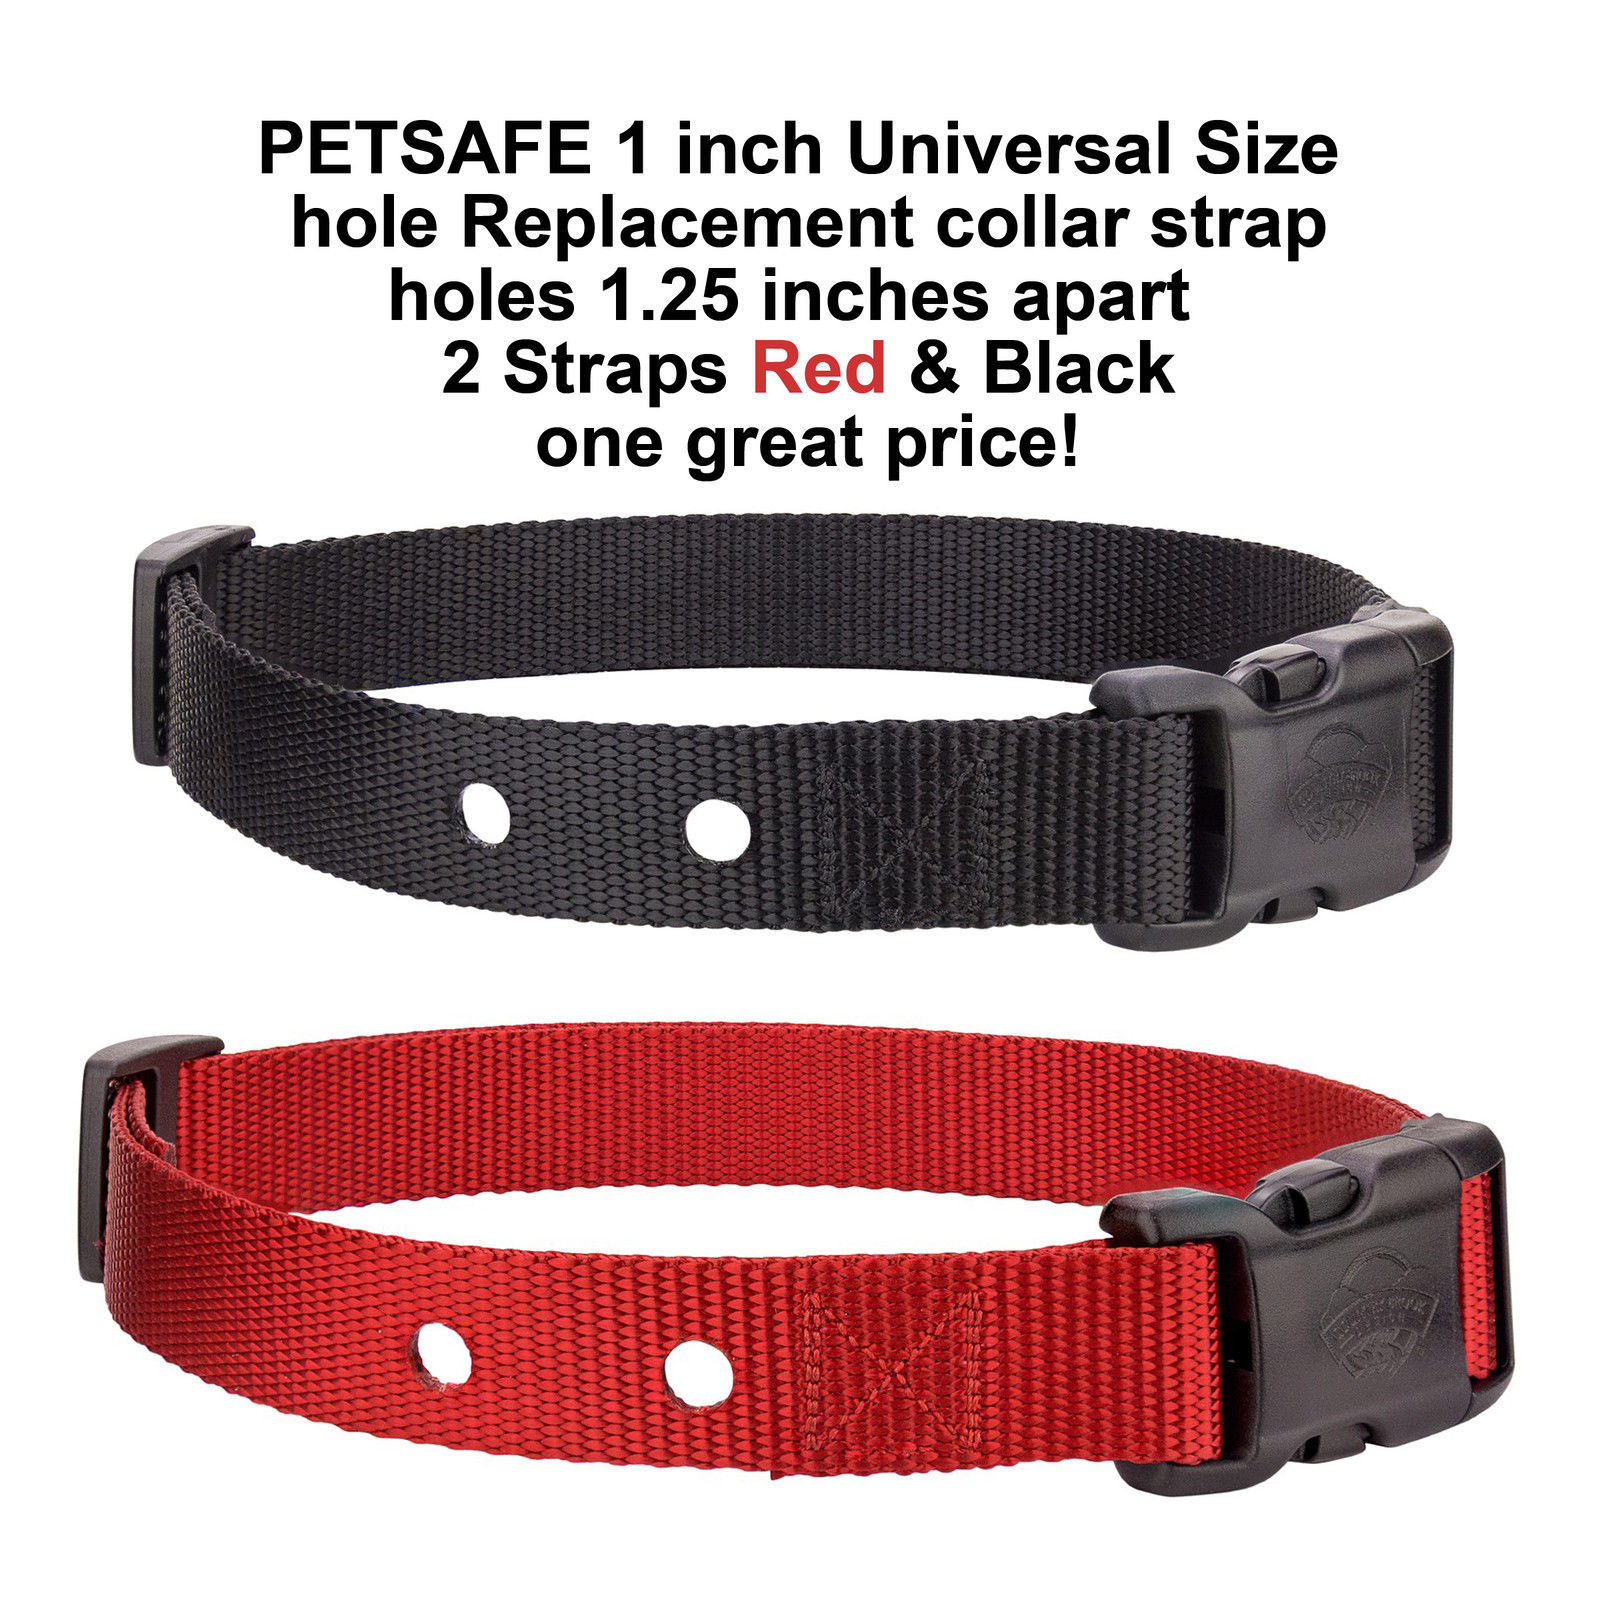 PETSAFE 1 inch Universal Size Replacement collar strap- 2 Straps Red & Black